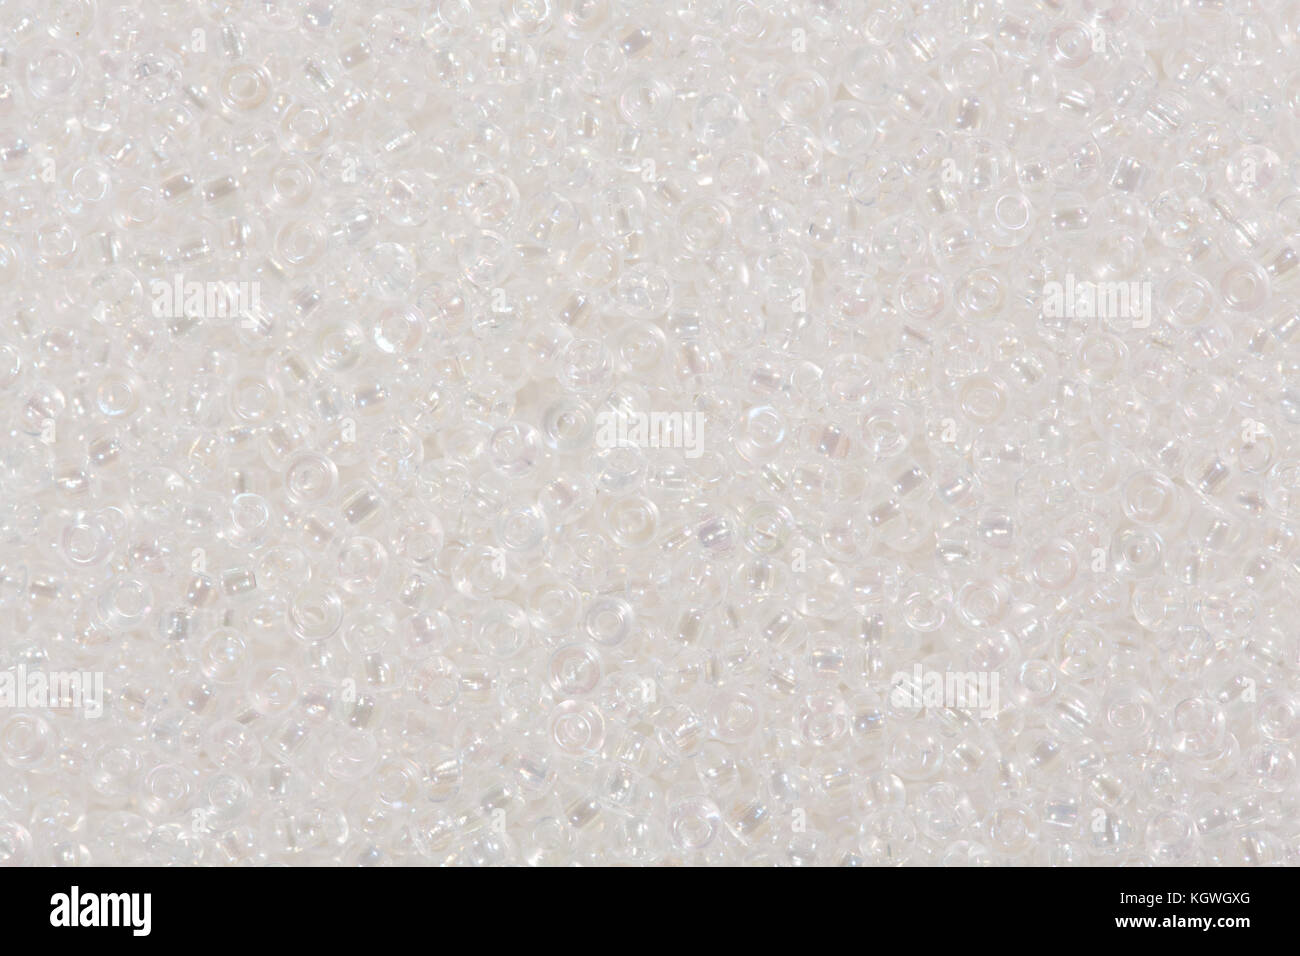 White seed beads. - Stock Image